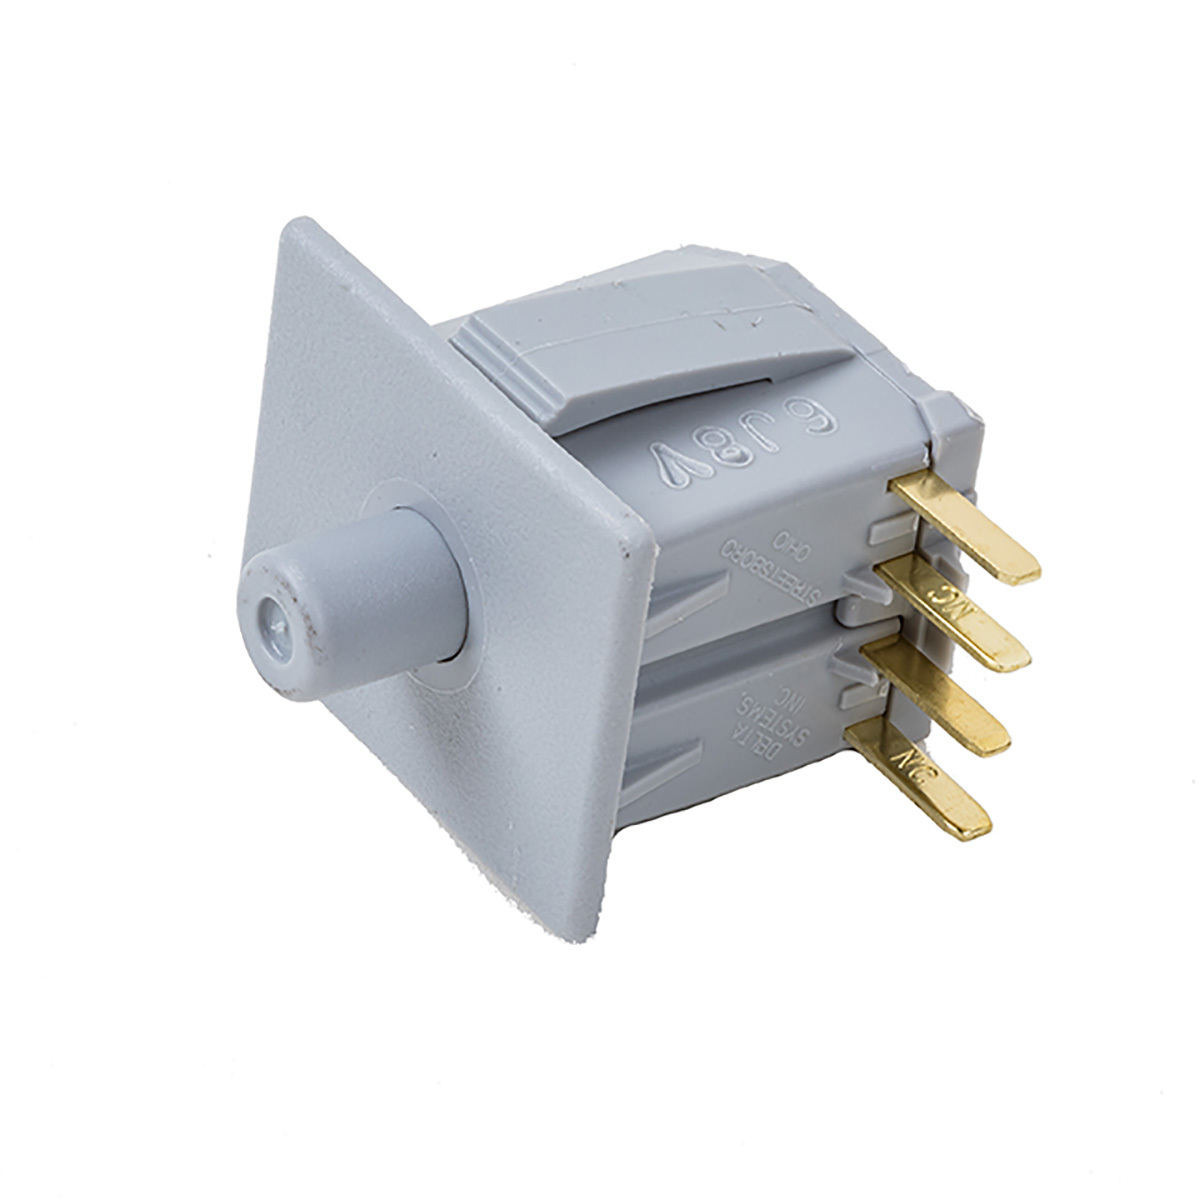 Seat Safety Switch For Many Riding Lawn Riding Lawn Mowers